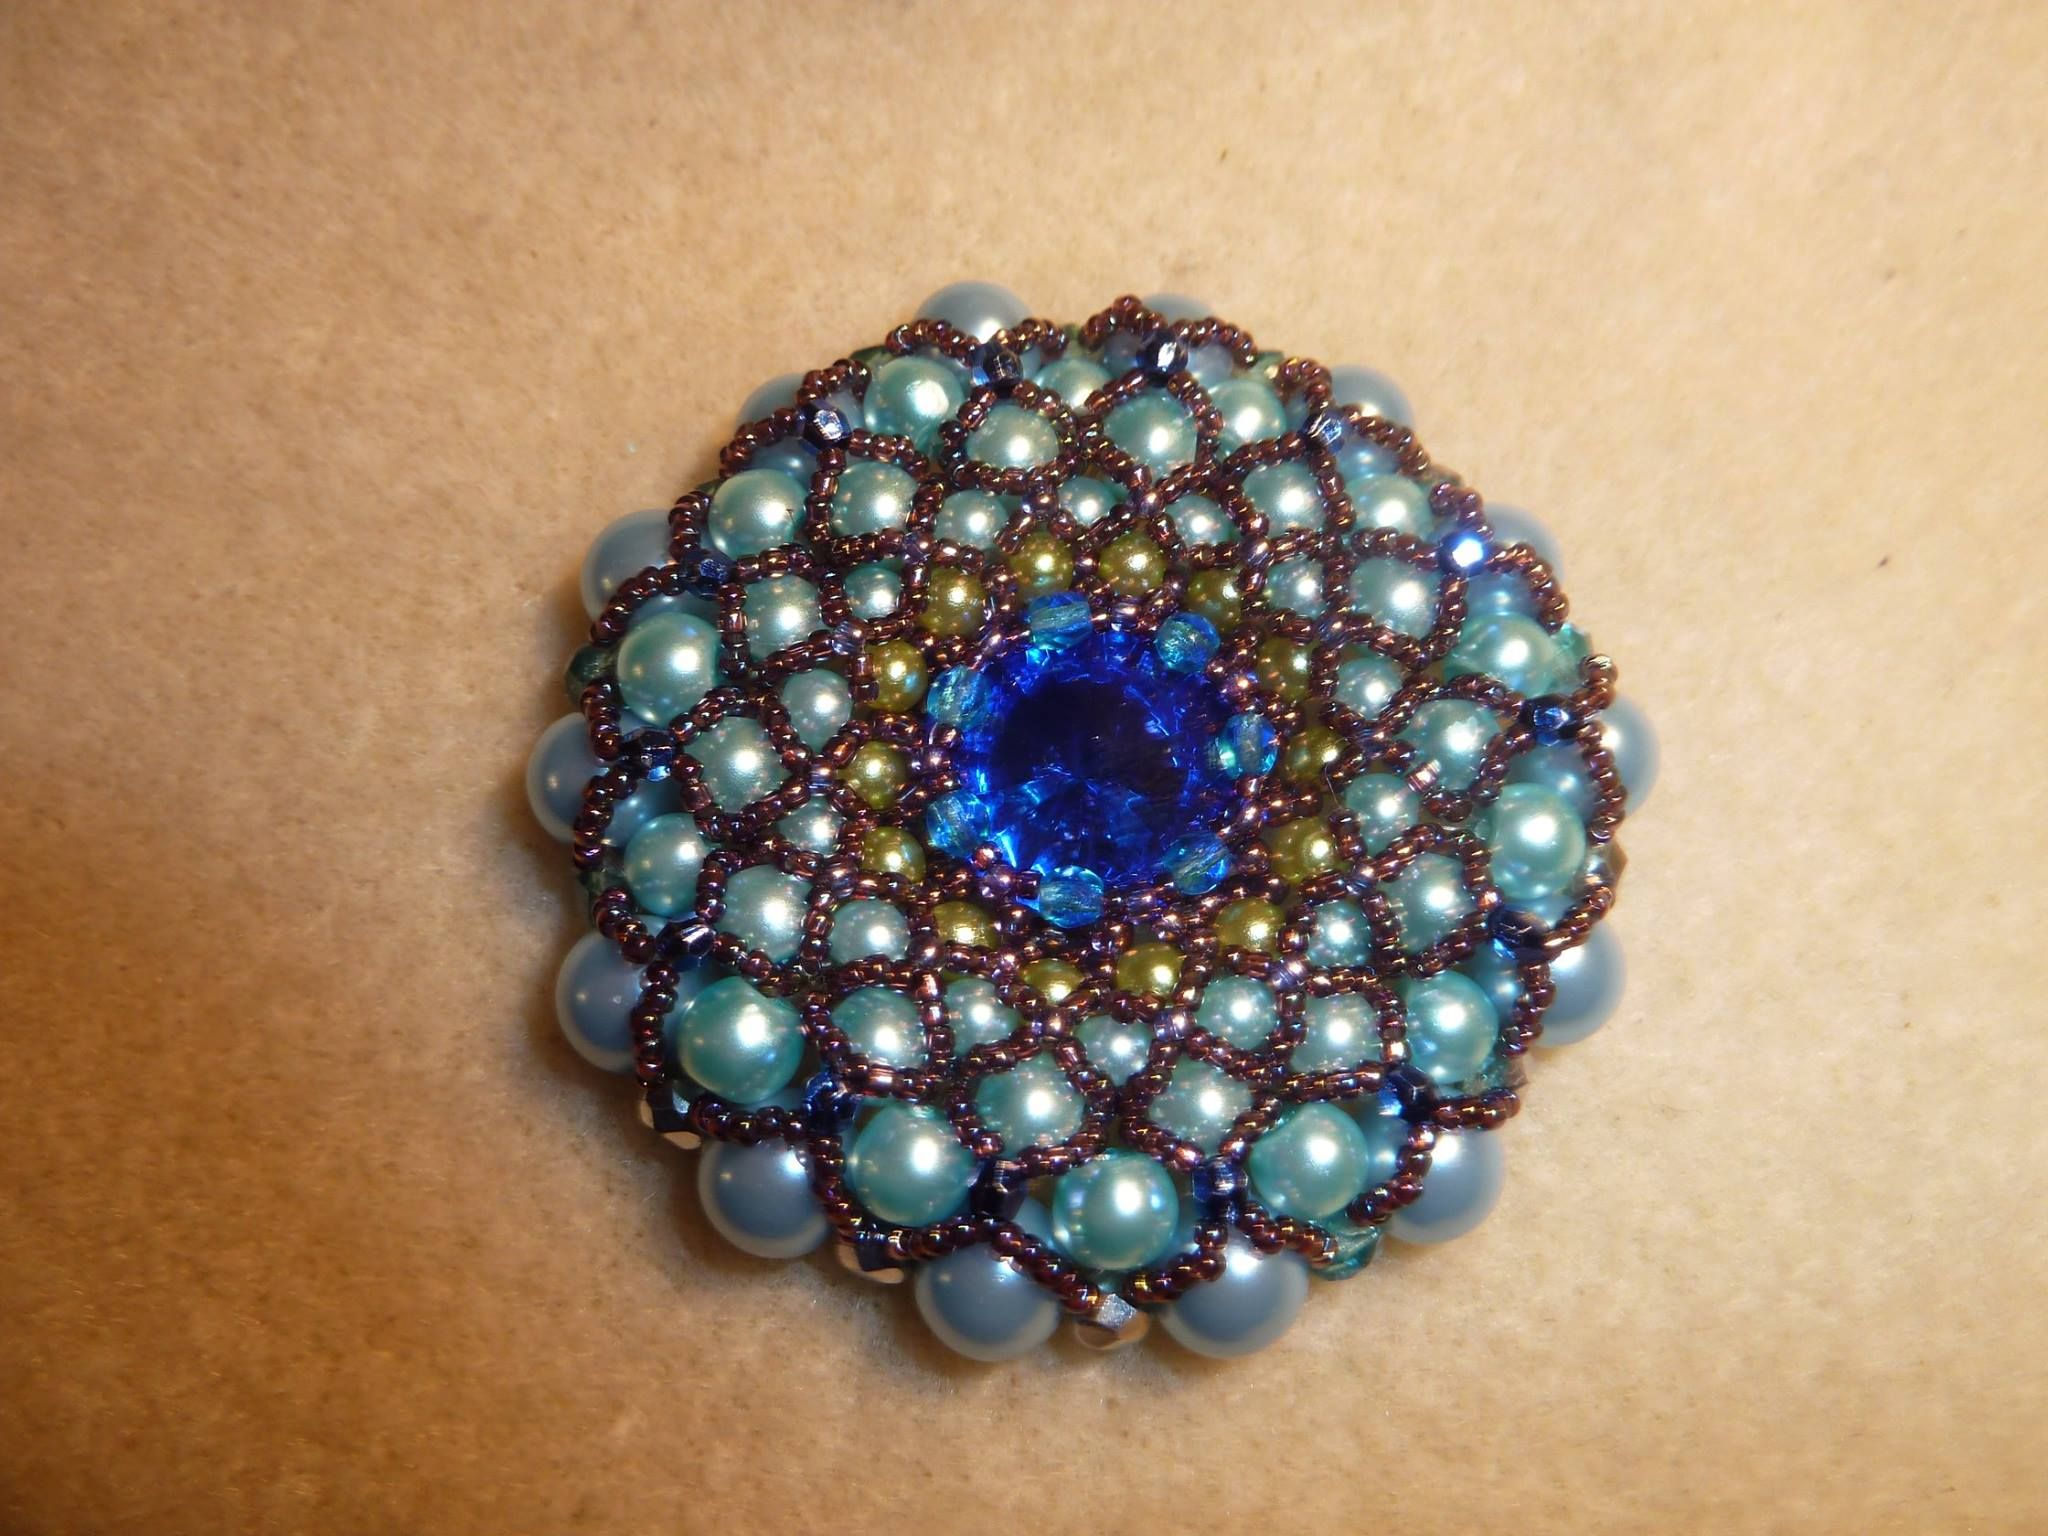 Design house jewelry - Facebook Fans Along With Our In House Jewelry Designers